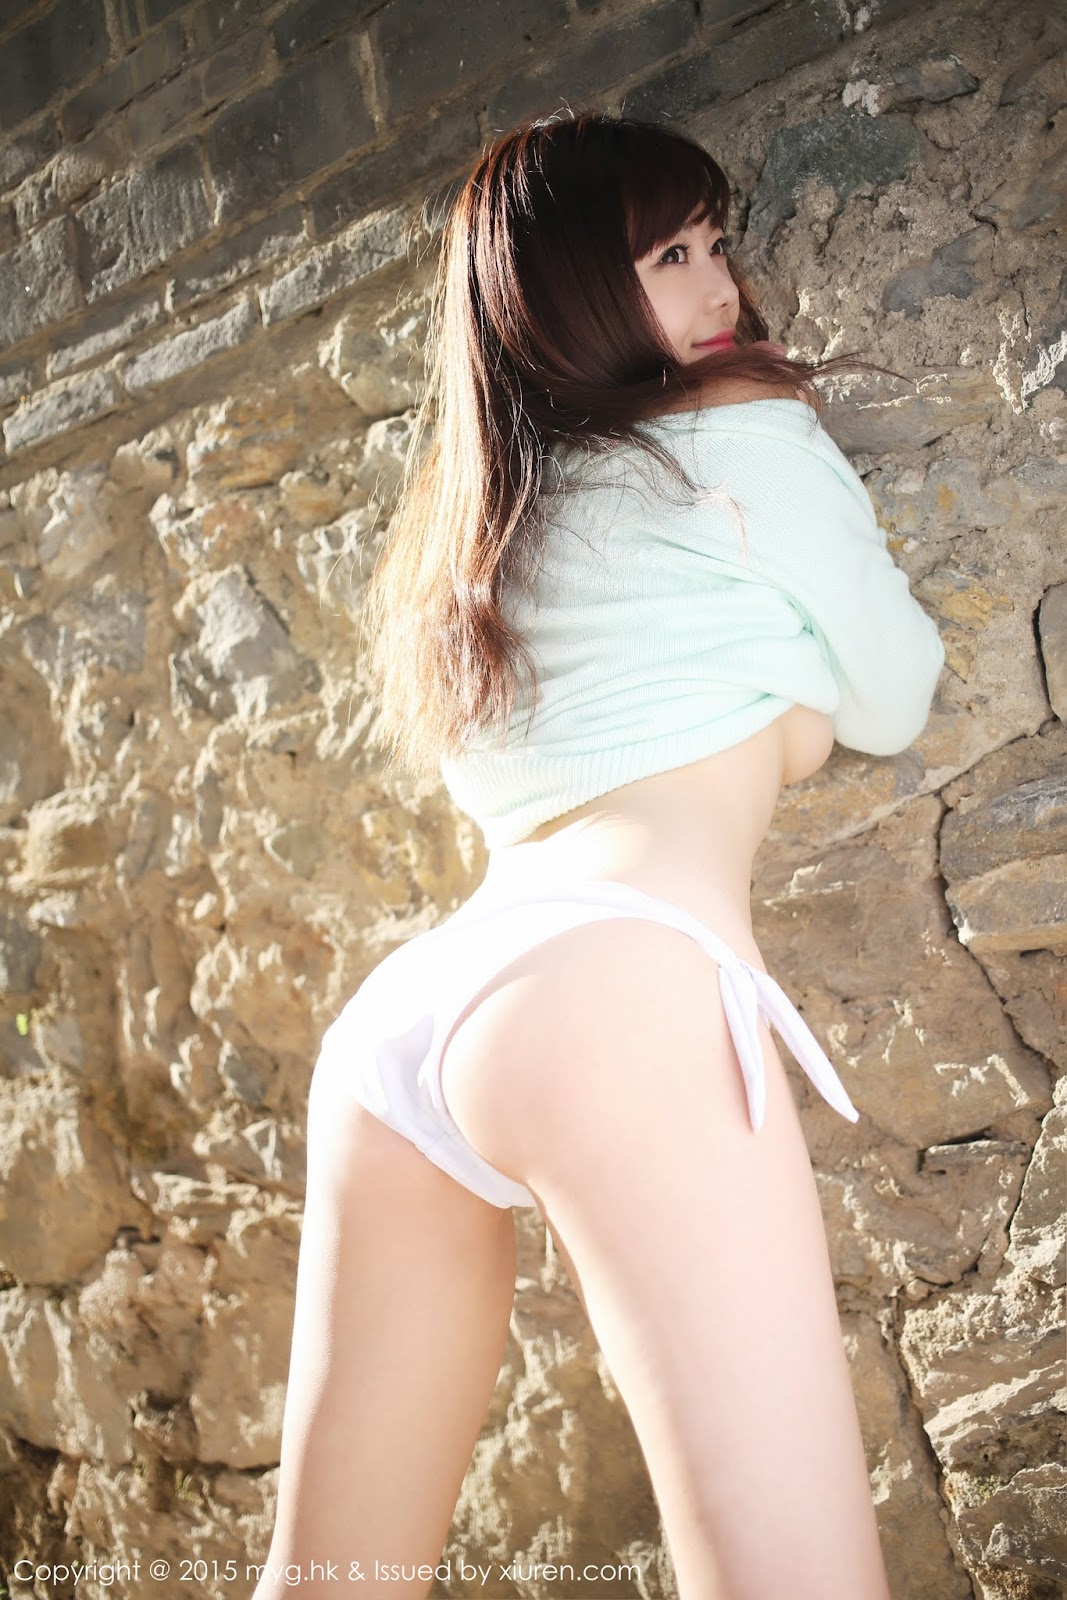 115%2B%252849%2529 - Sexy Girl MYGIRL VOL.115 FAYE